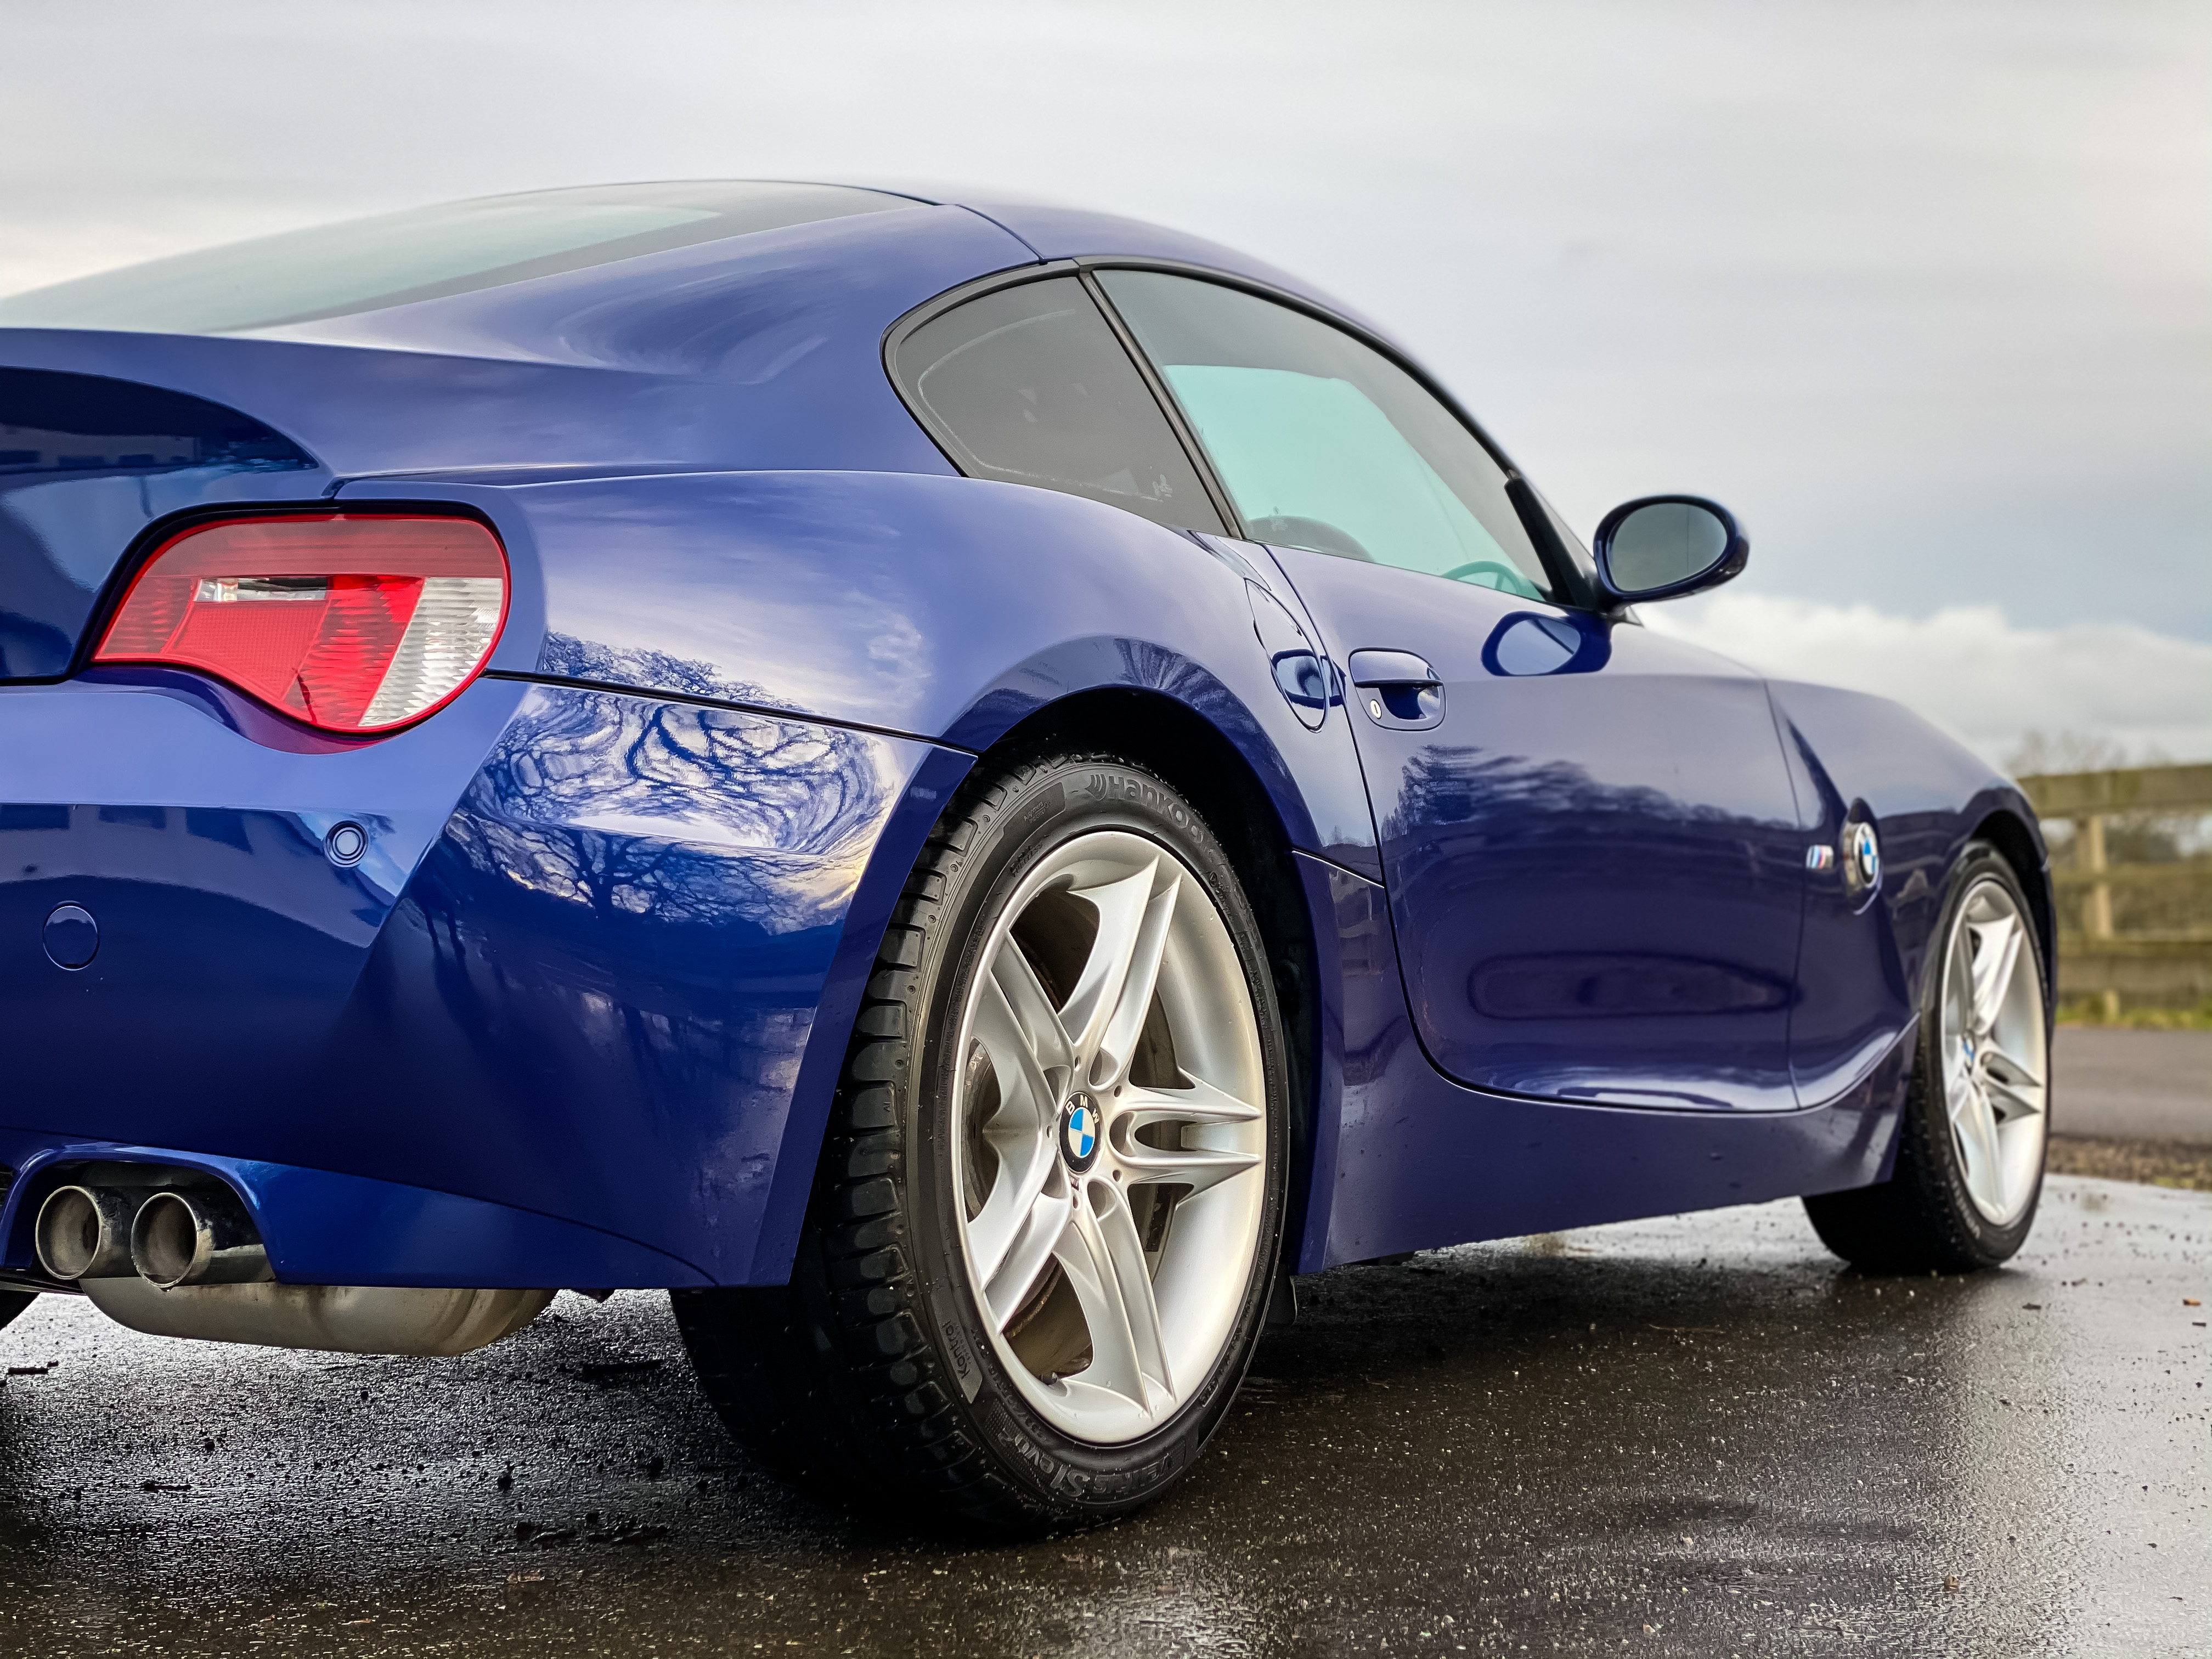 2006 BMW Z4M Coupe